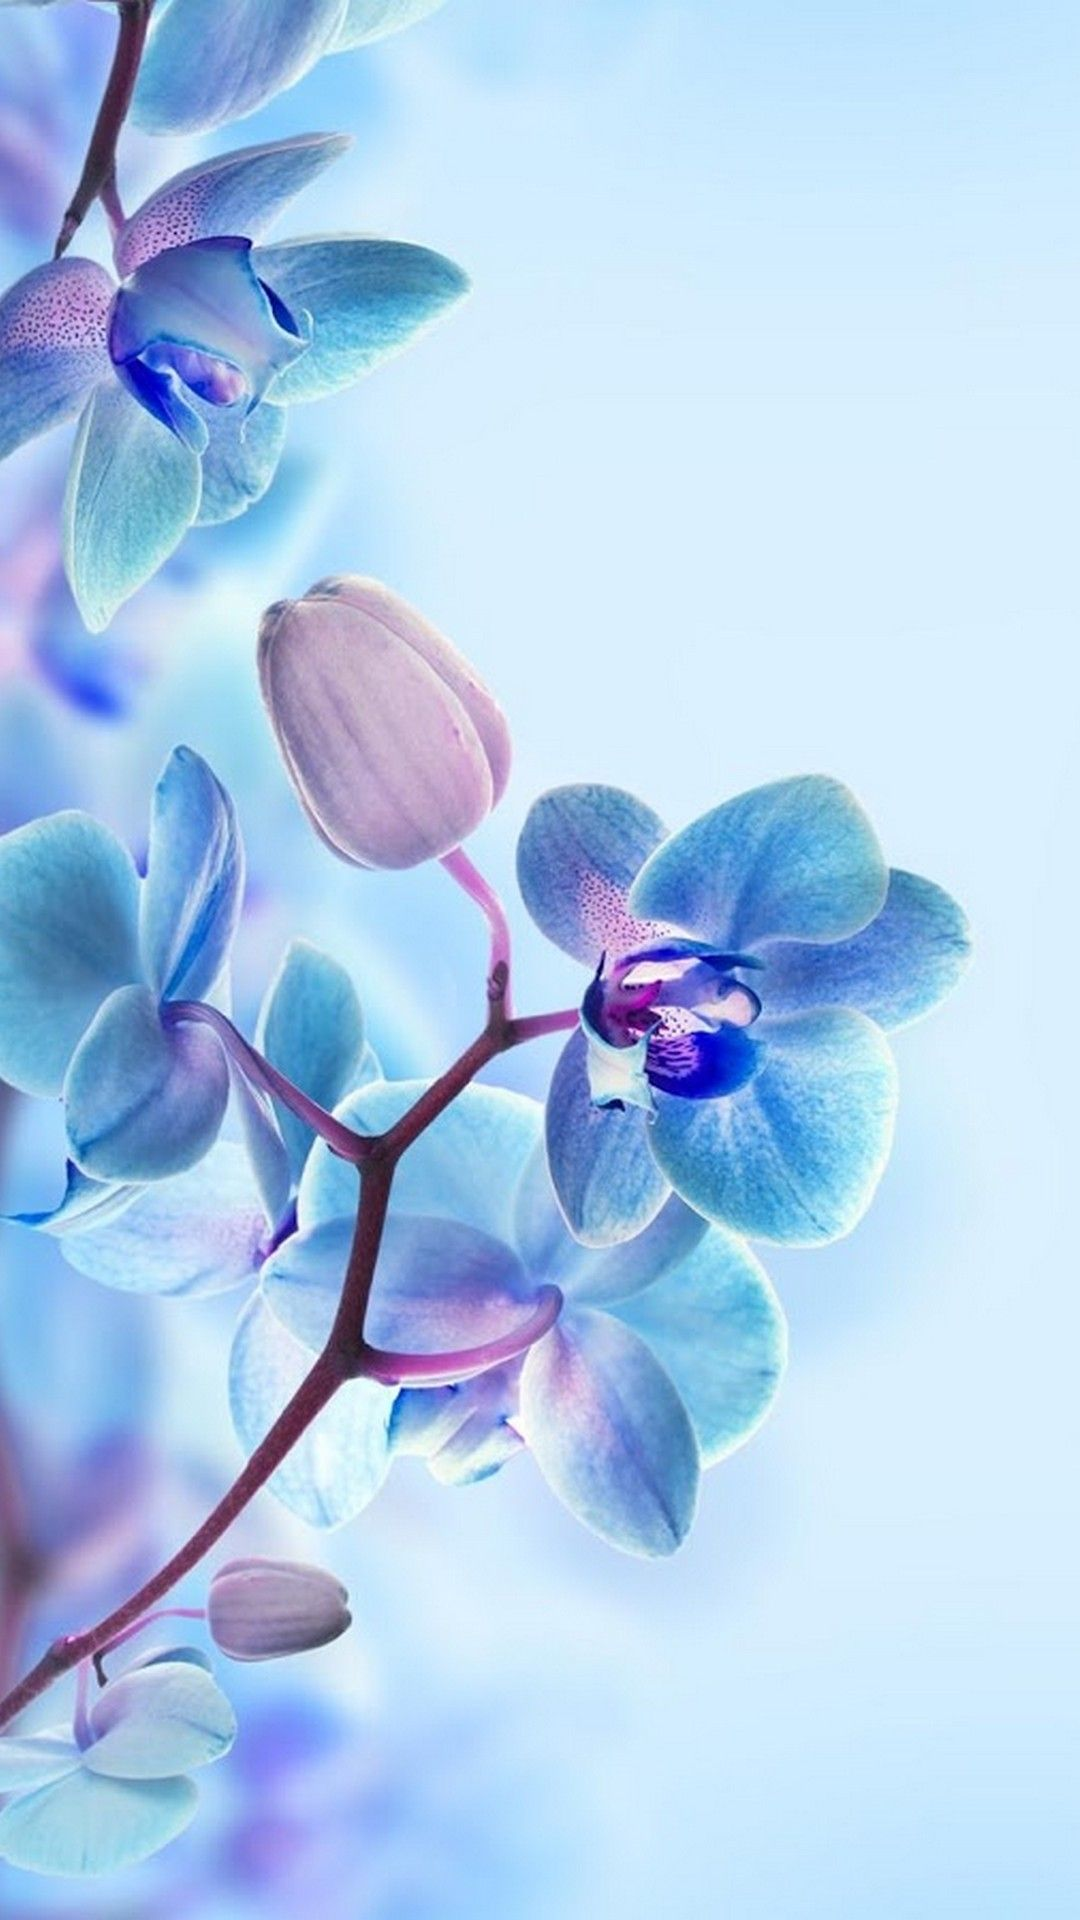 3D Flower HD Wallpapers For Mobile Best HD Wallpapers Blue 1080x1920